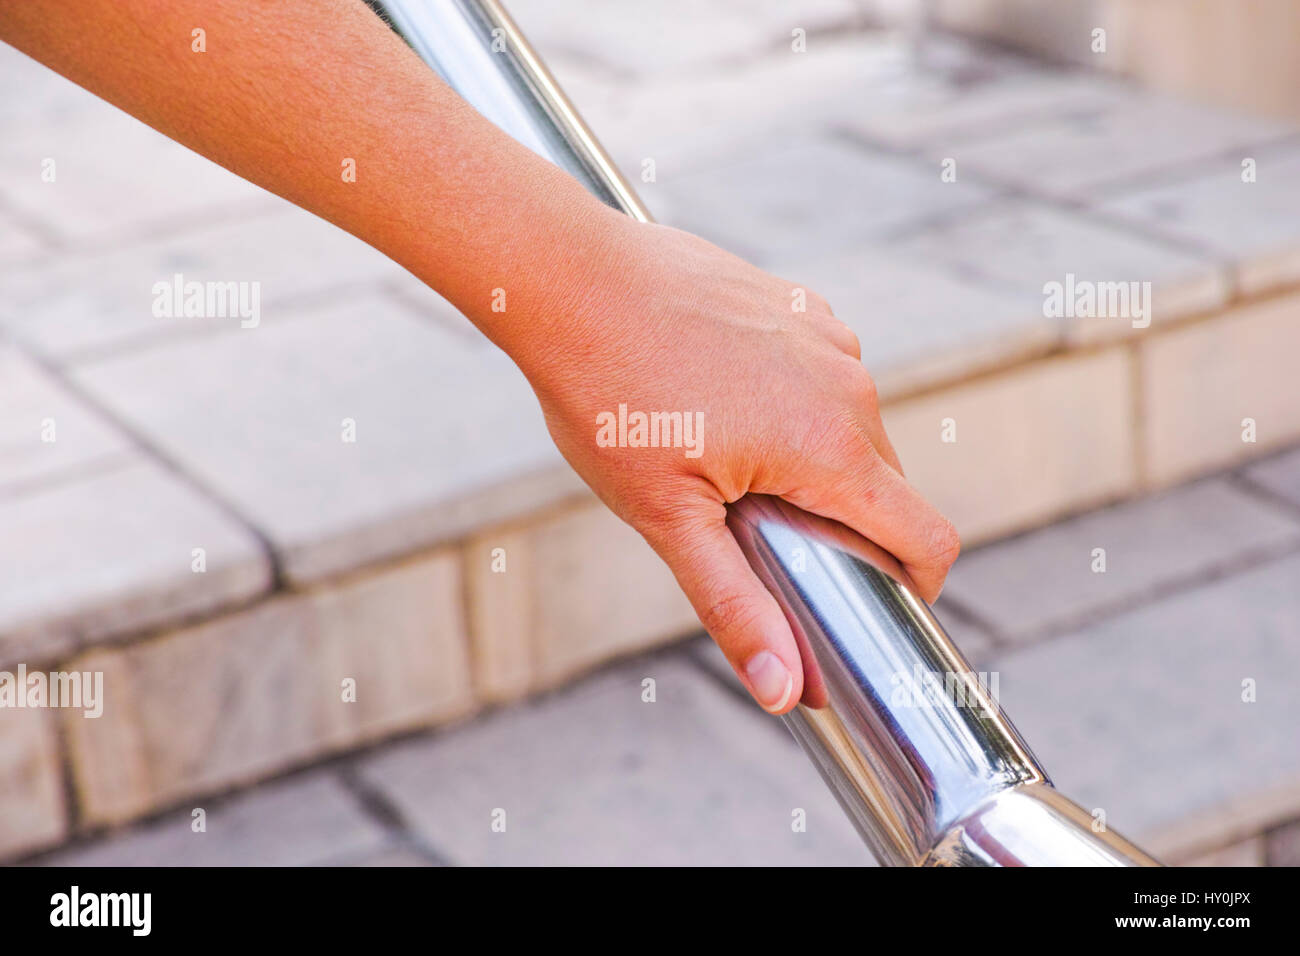 Woman hand using a handrail in the street. - Stock Image